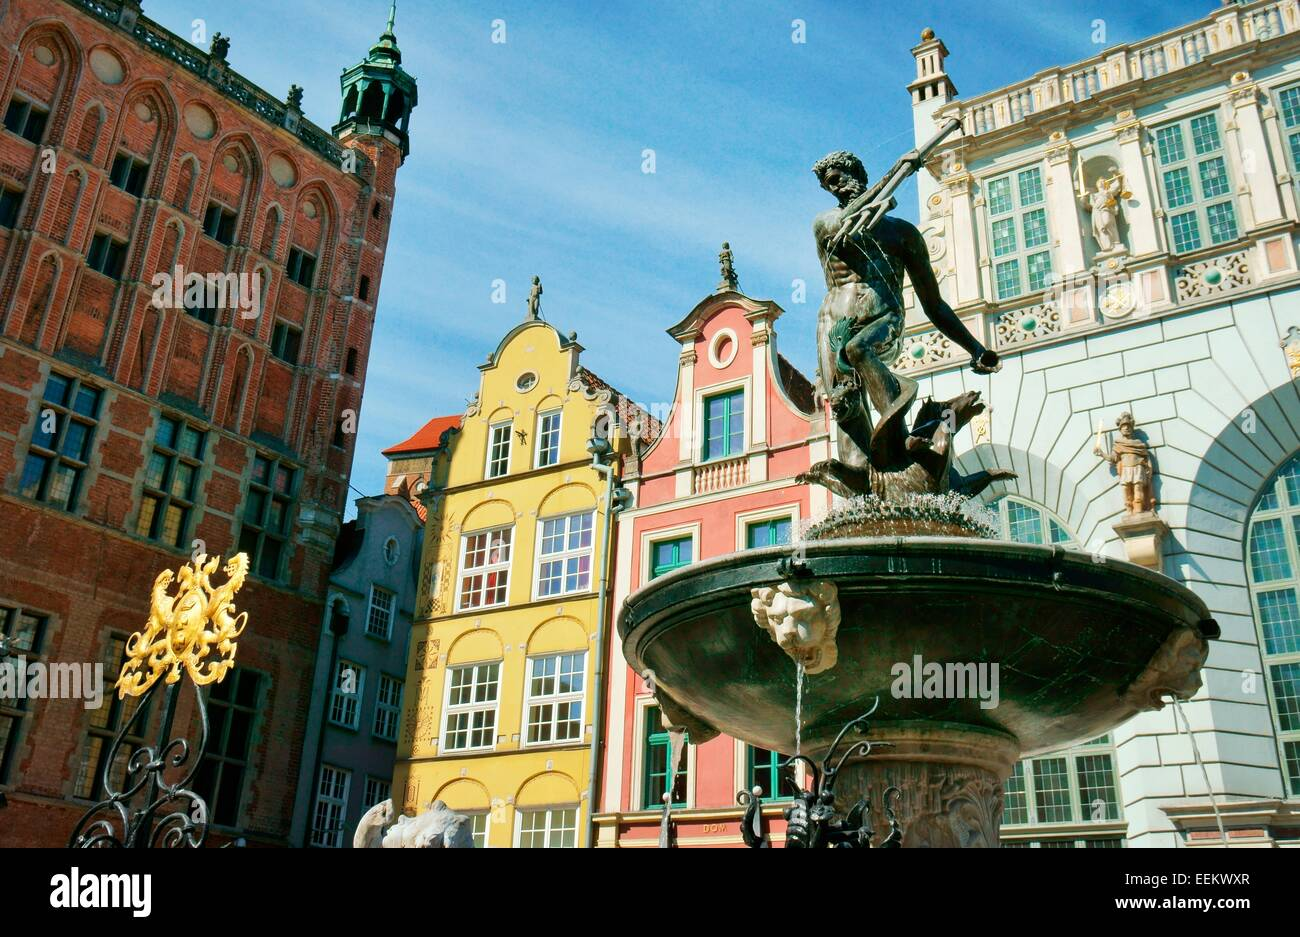 Gdansk Poland. The Neptune Fountain, erected 1633, in front of the ornate façades of the Main Town Hall and - Stock Image